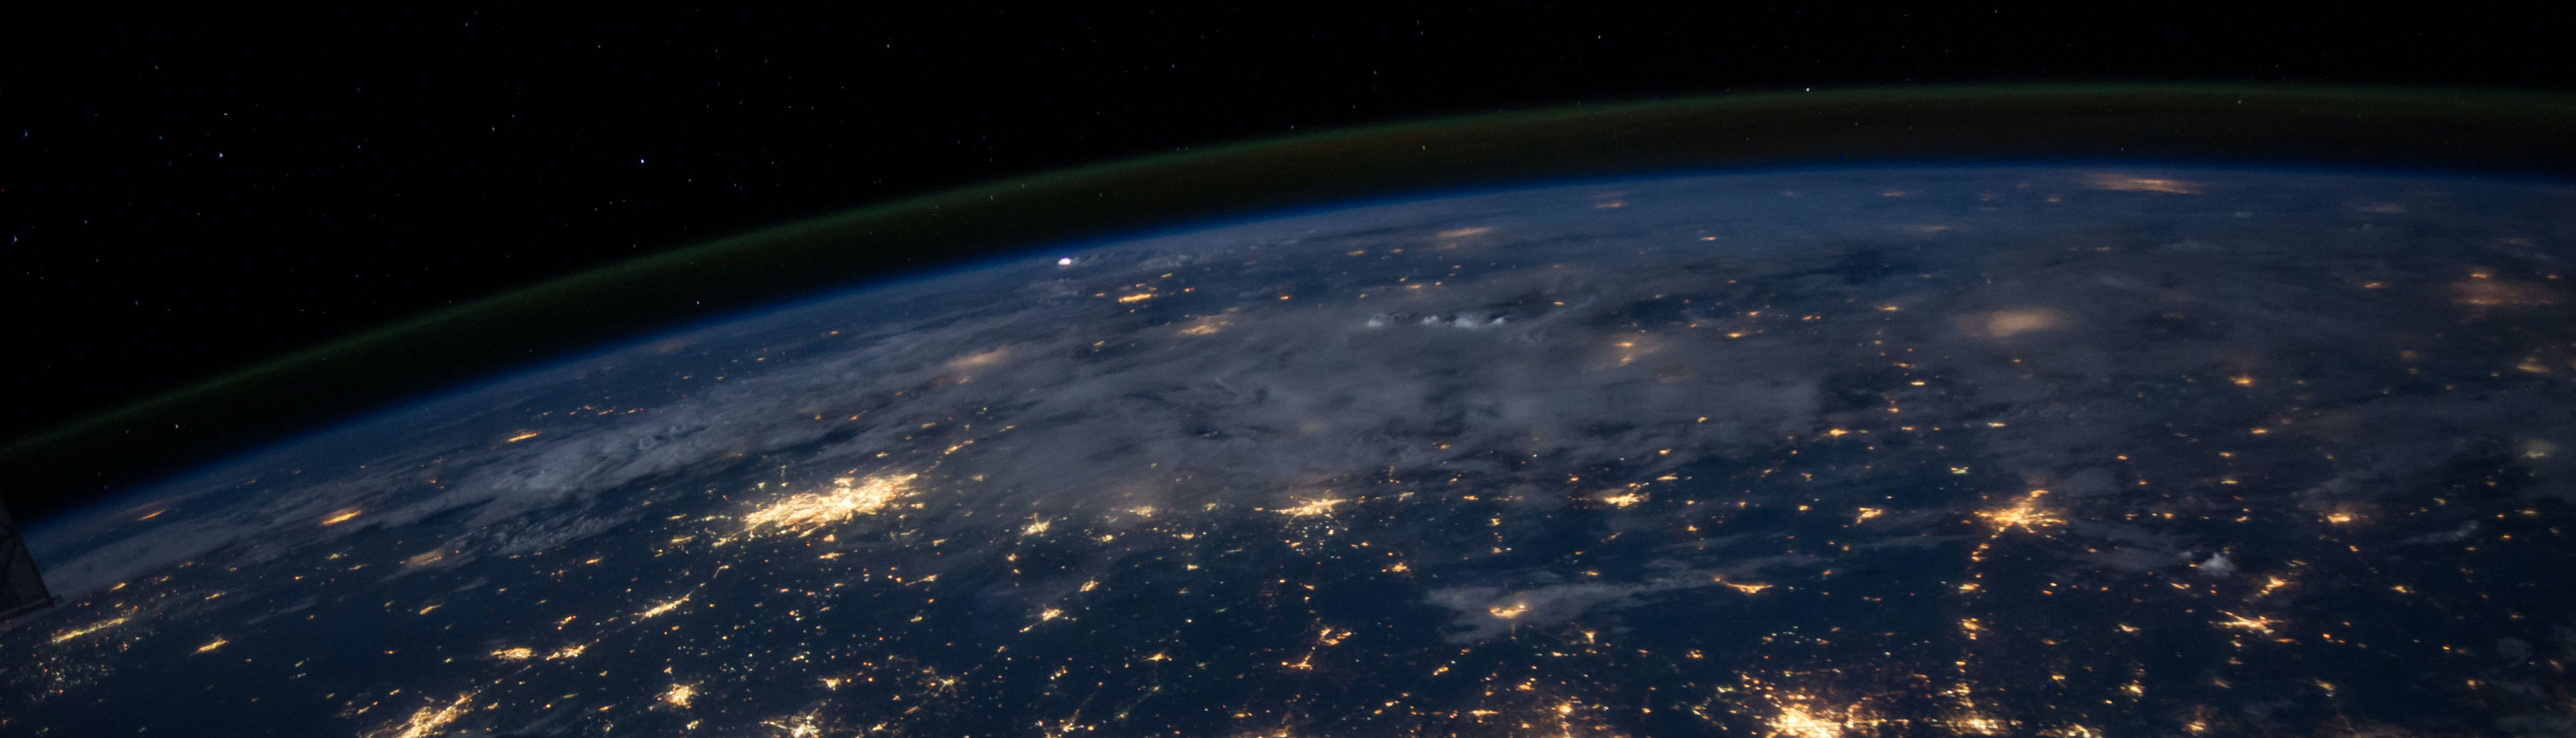 Image of earth as seen from space